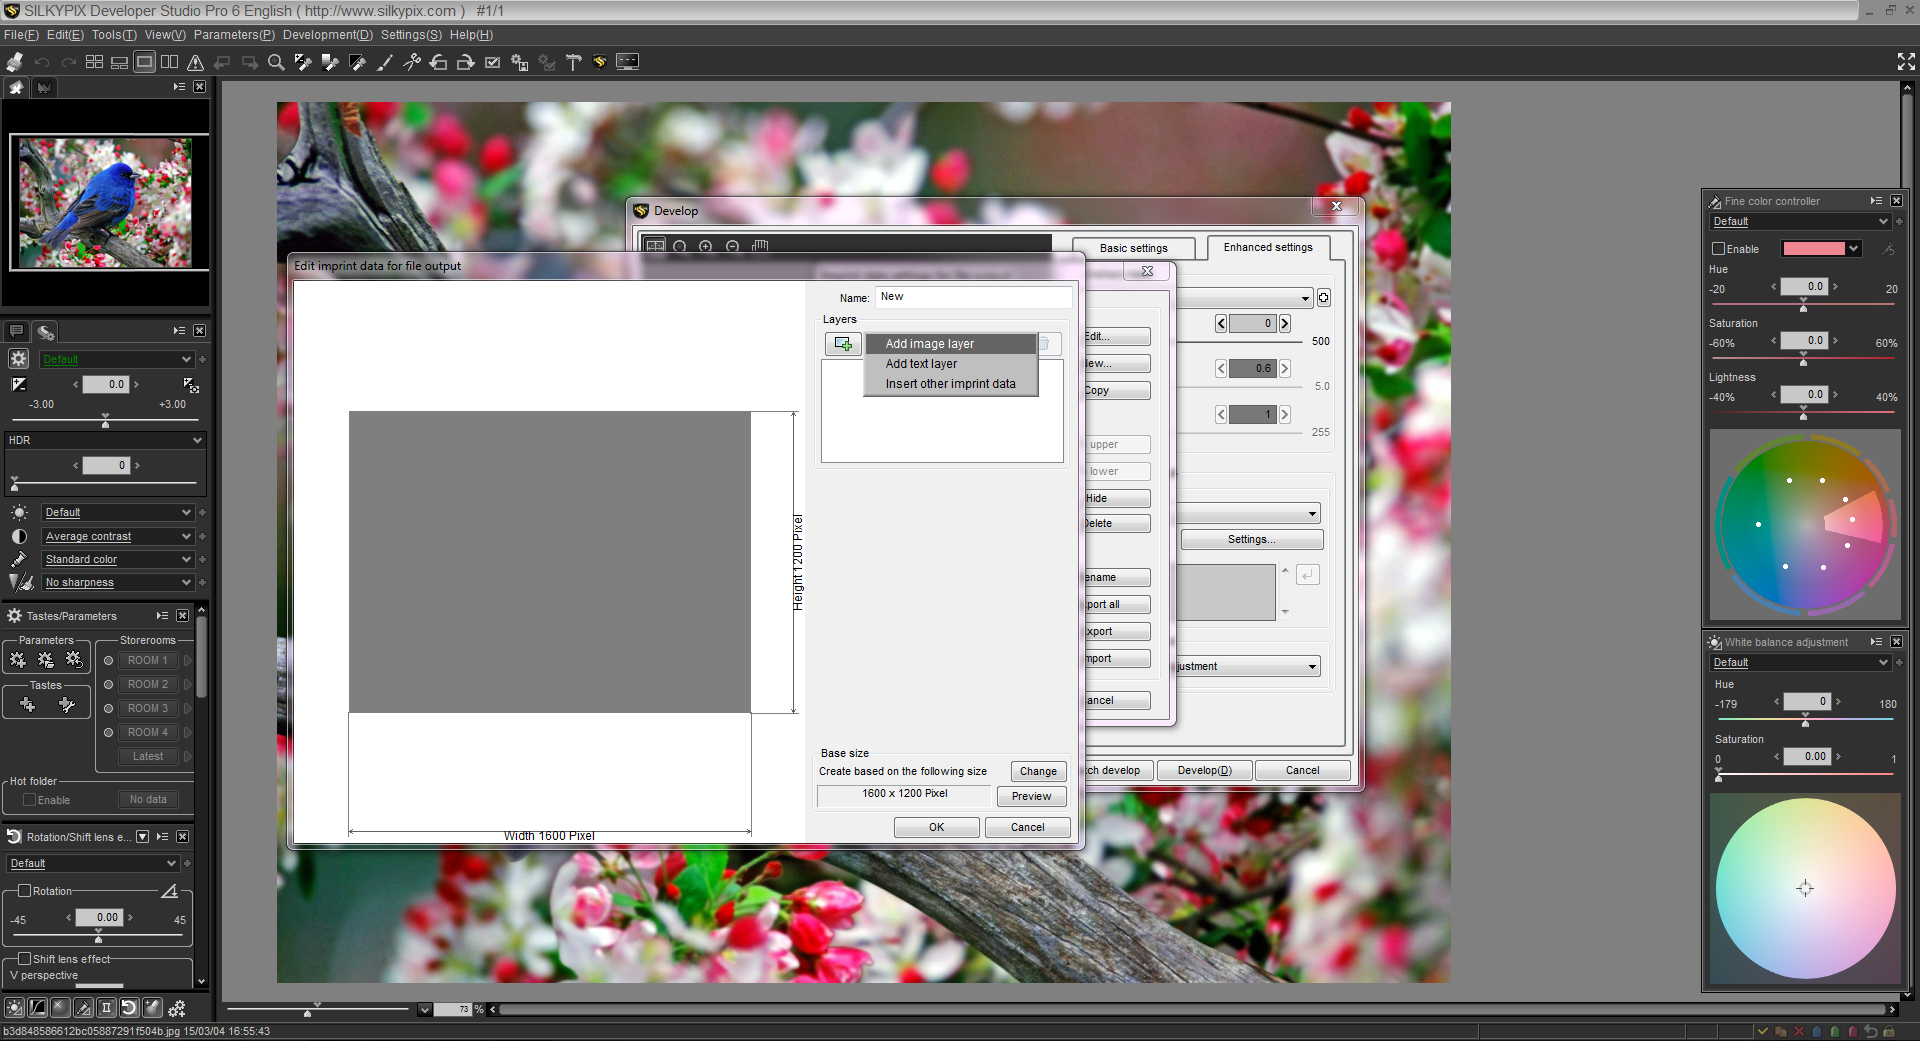 Add a Layer in the SILKYPIX template